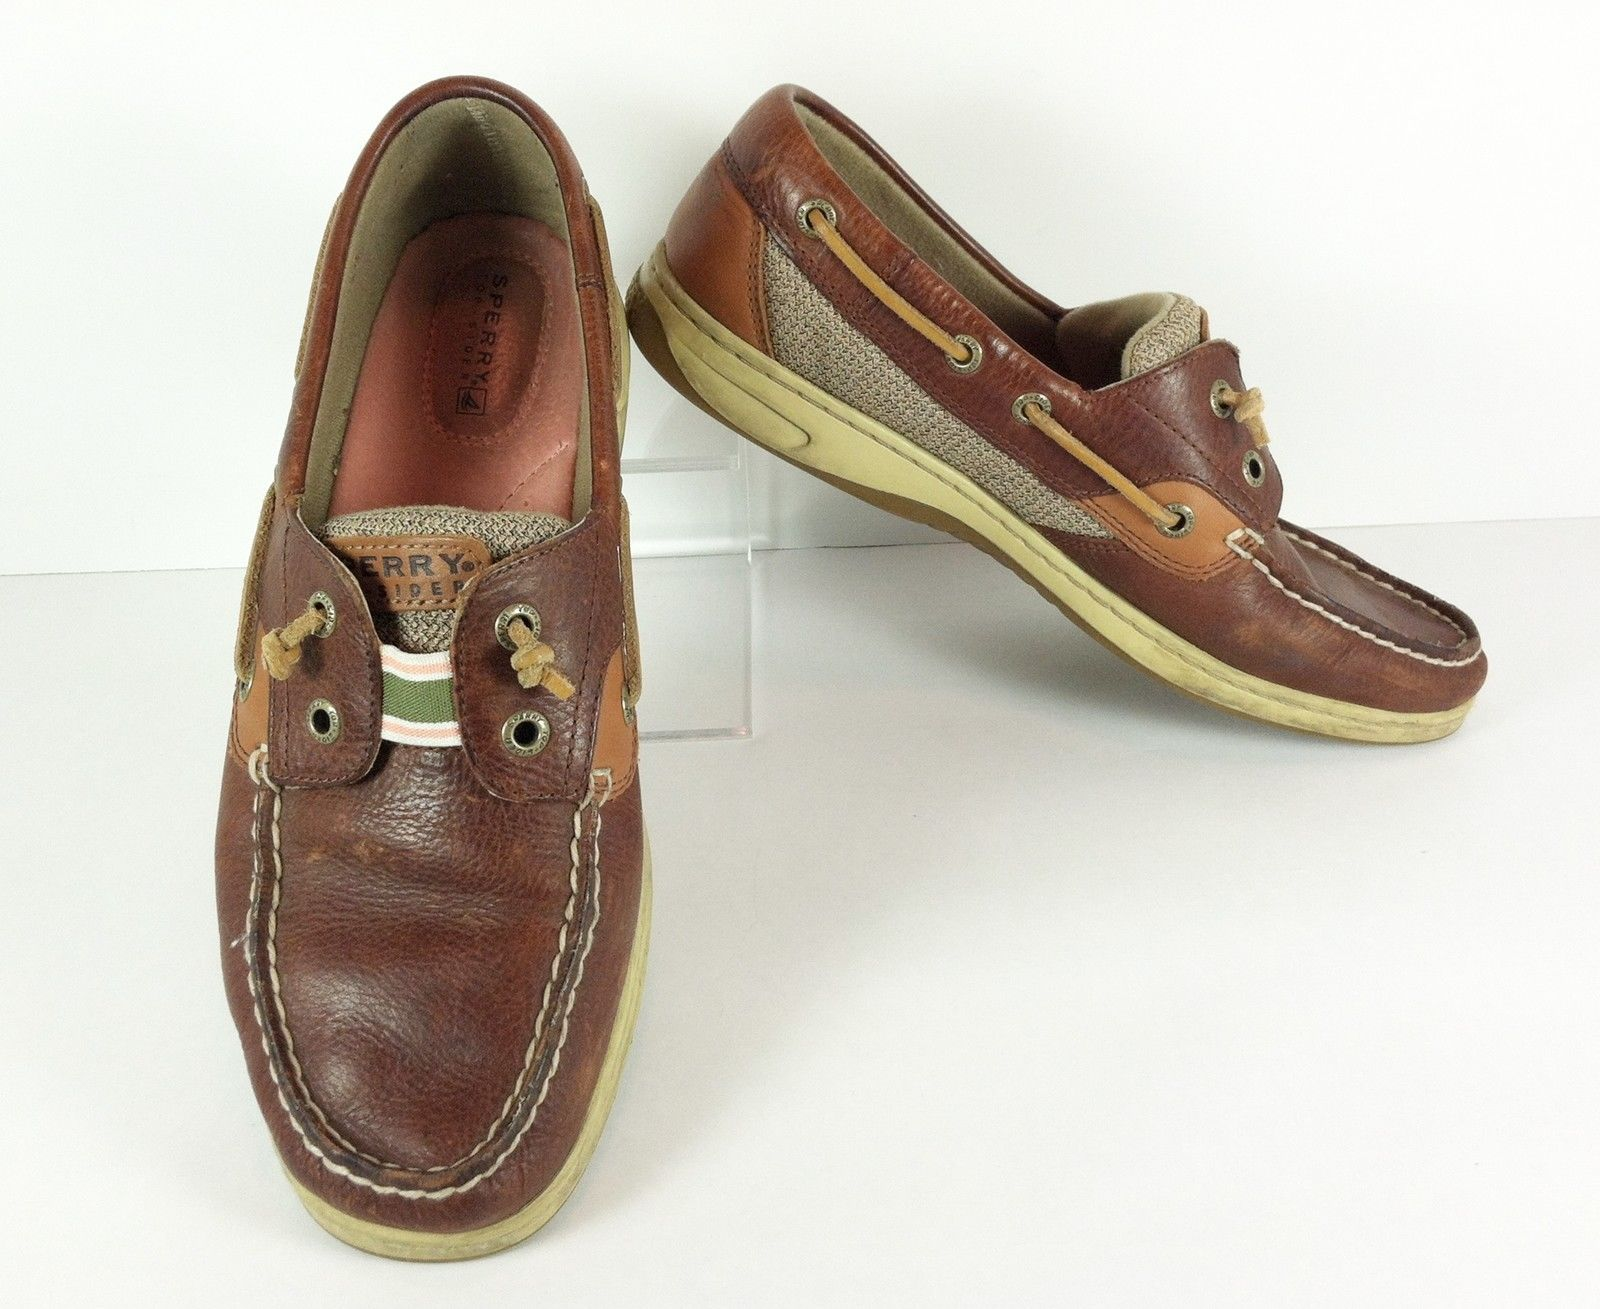 8b5f209d8ba Sperry Top Sider Rainbowfish Boat Shoes and 50 similar items. 57